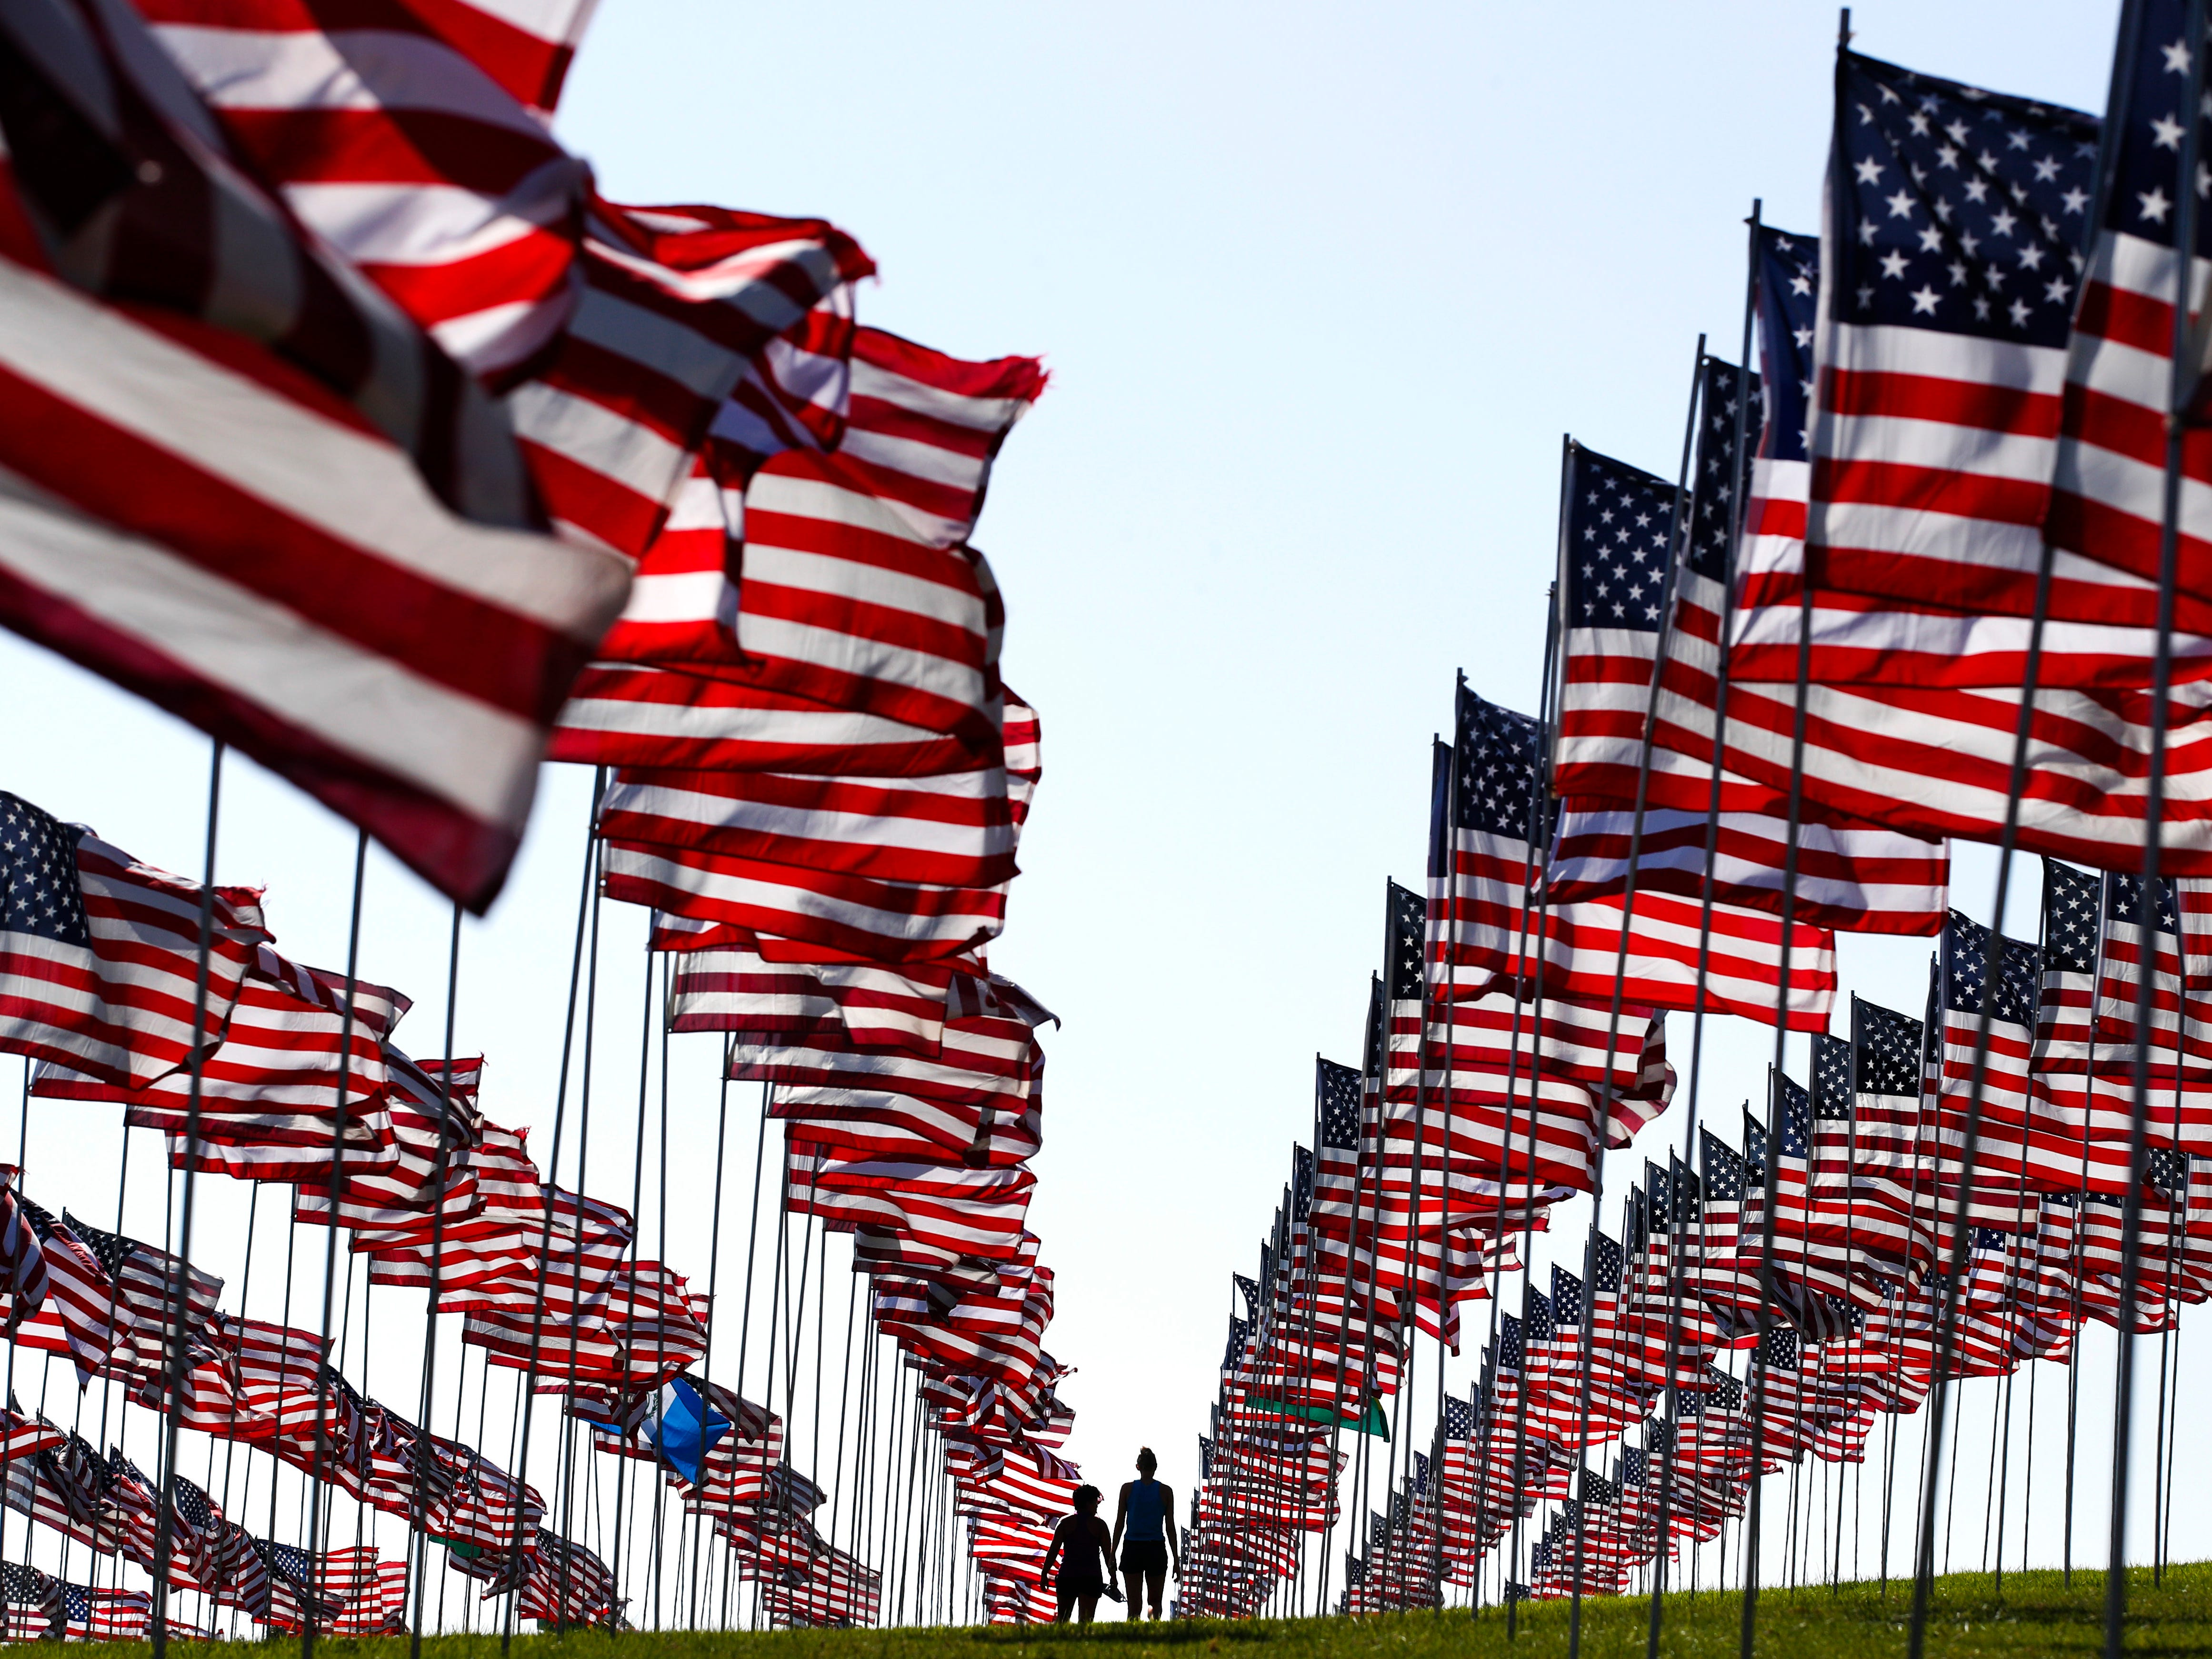 Bianca Burton, center left, and Erin Schultheis walk around the Pepperdine University's annual display of flags honoring the victims of the 9/11 terrorist attacks, Monday, Sept. 10, 2018, in Malibu, Calif. Terrorists used hijacked planes to crash Sept. 11, 2001, into the World Trade Centers, the Pentagon and a field in Pennsylvania. Nearly 3,000 people were killed in the attacks.